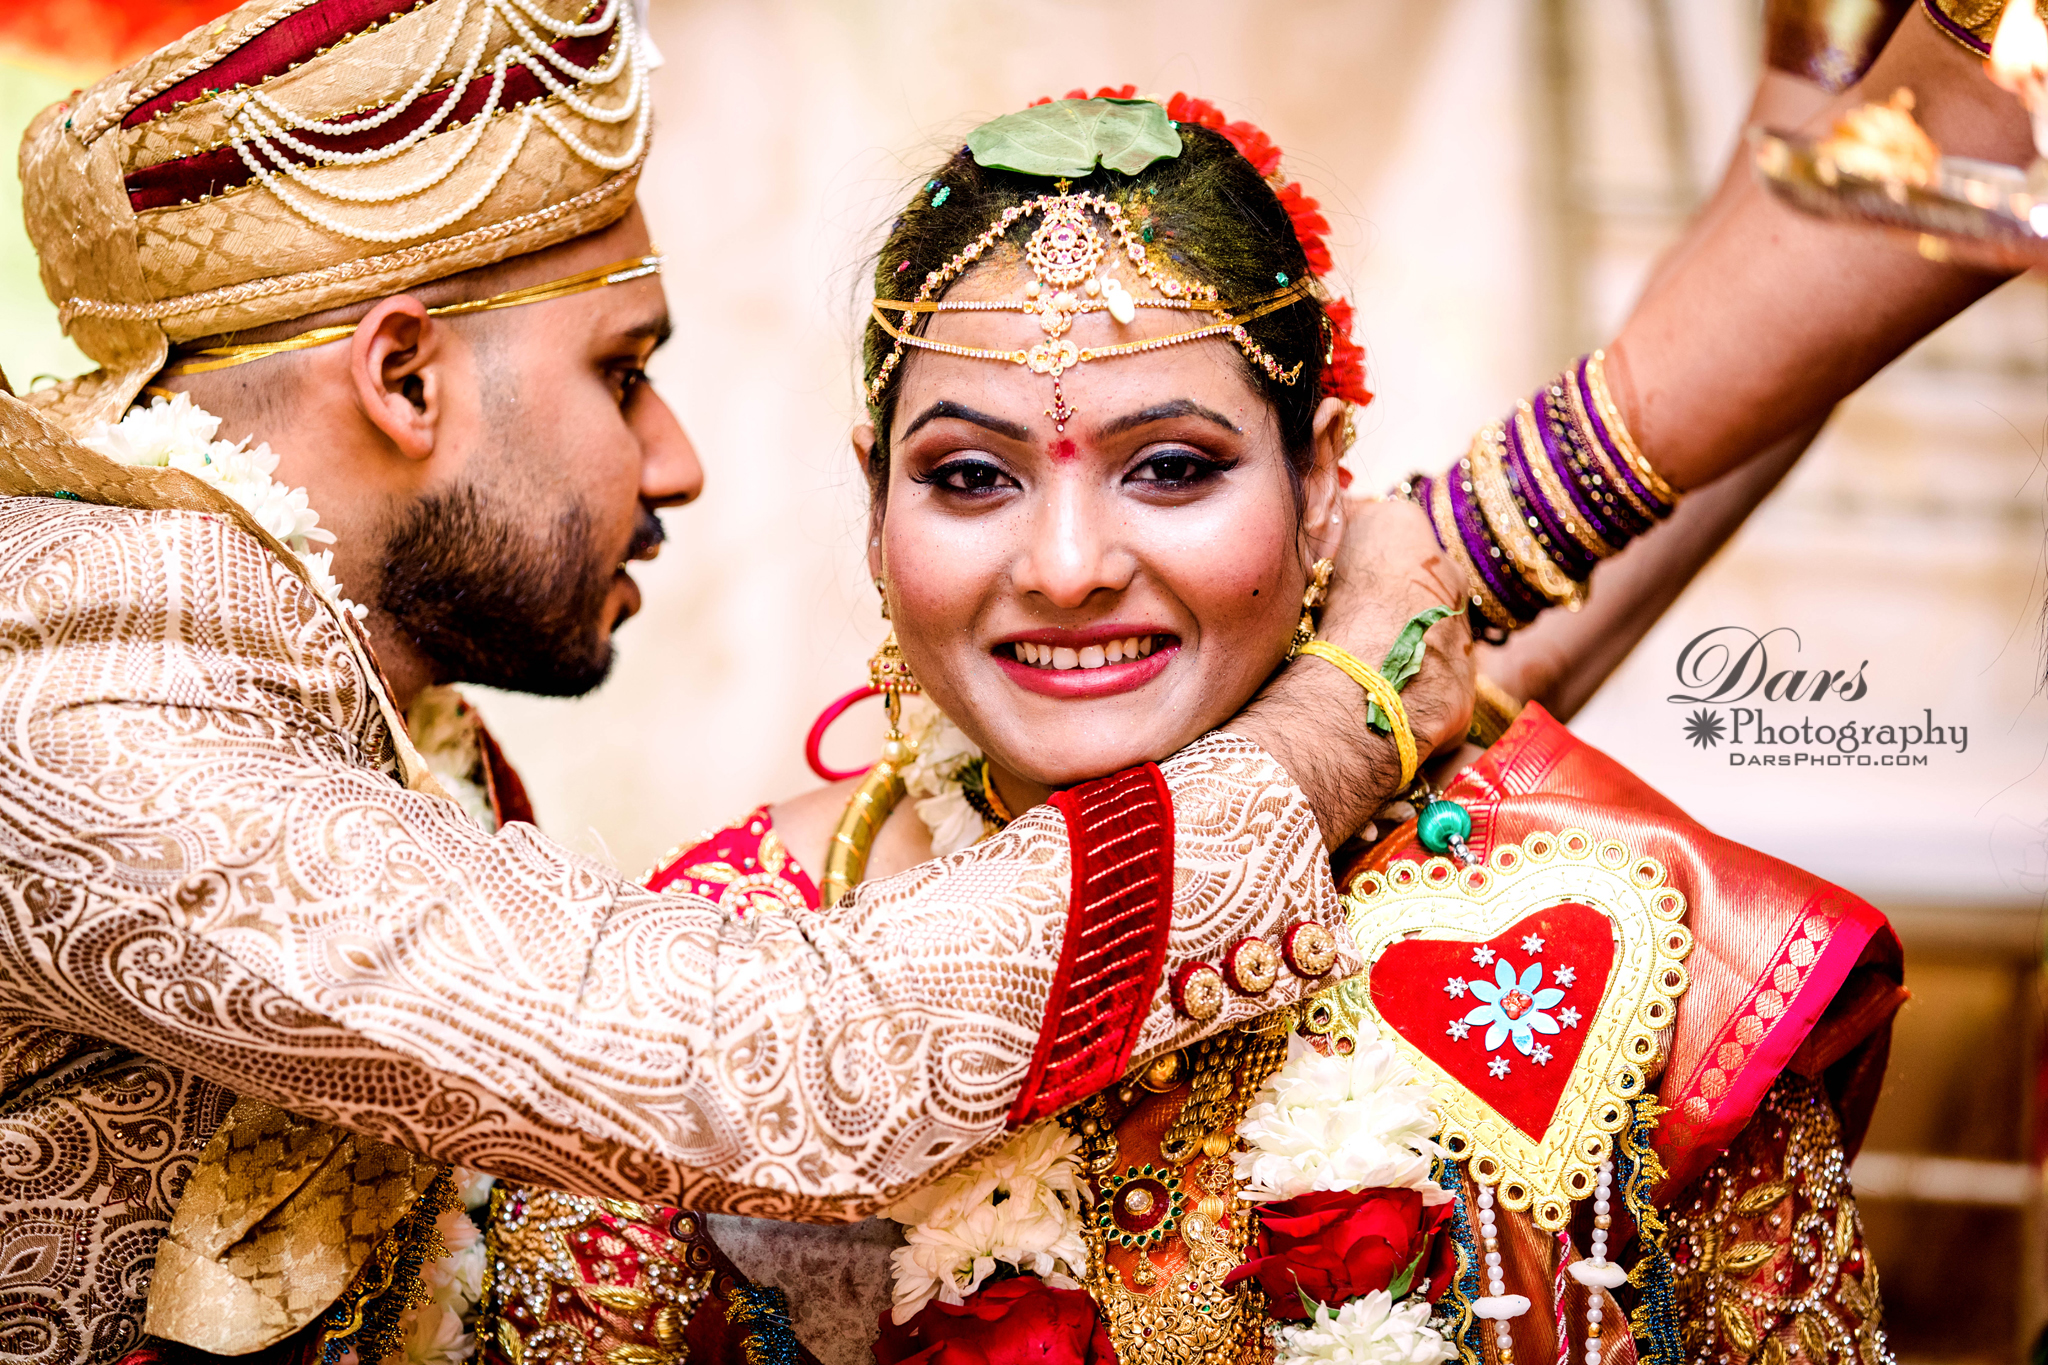 Chicago American And Indian Wedding Photographer DARS Photography 22